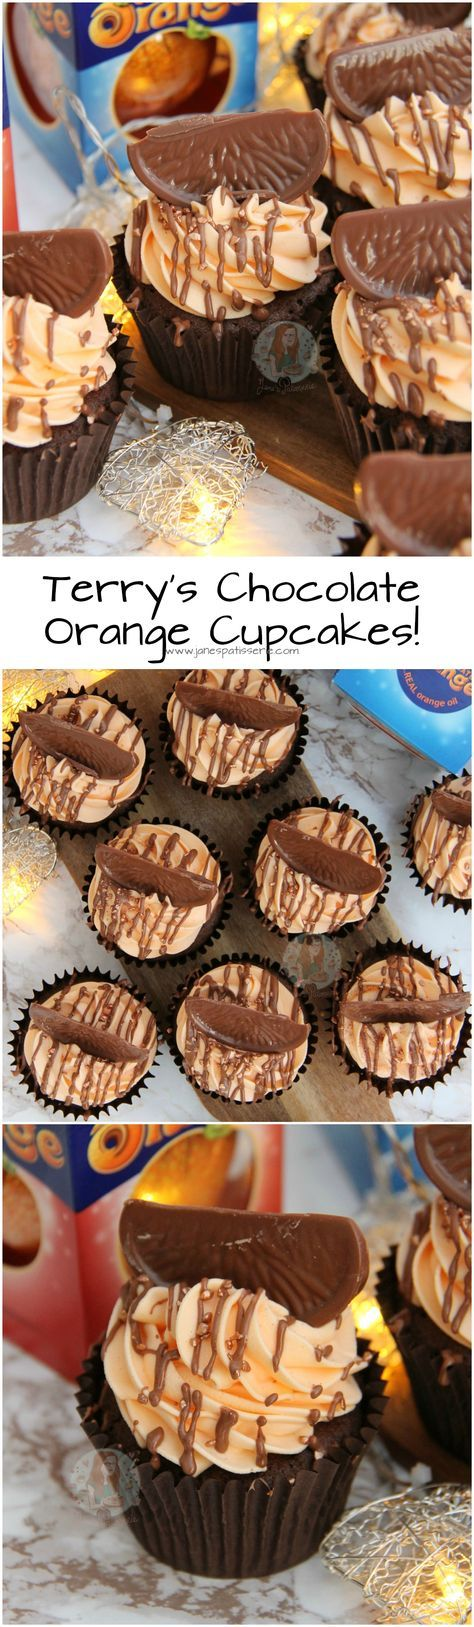 Terry's Chocolate Orange Cupcakes! ❤️ Chocolatey Cupcakes studded with Chunks of Terry's Chocolate Orange, topped with an Orange Buttercream, and even more Chocolate Orange!